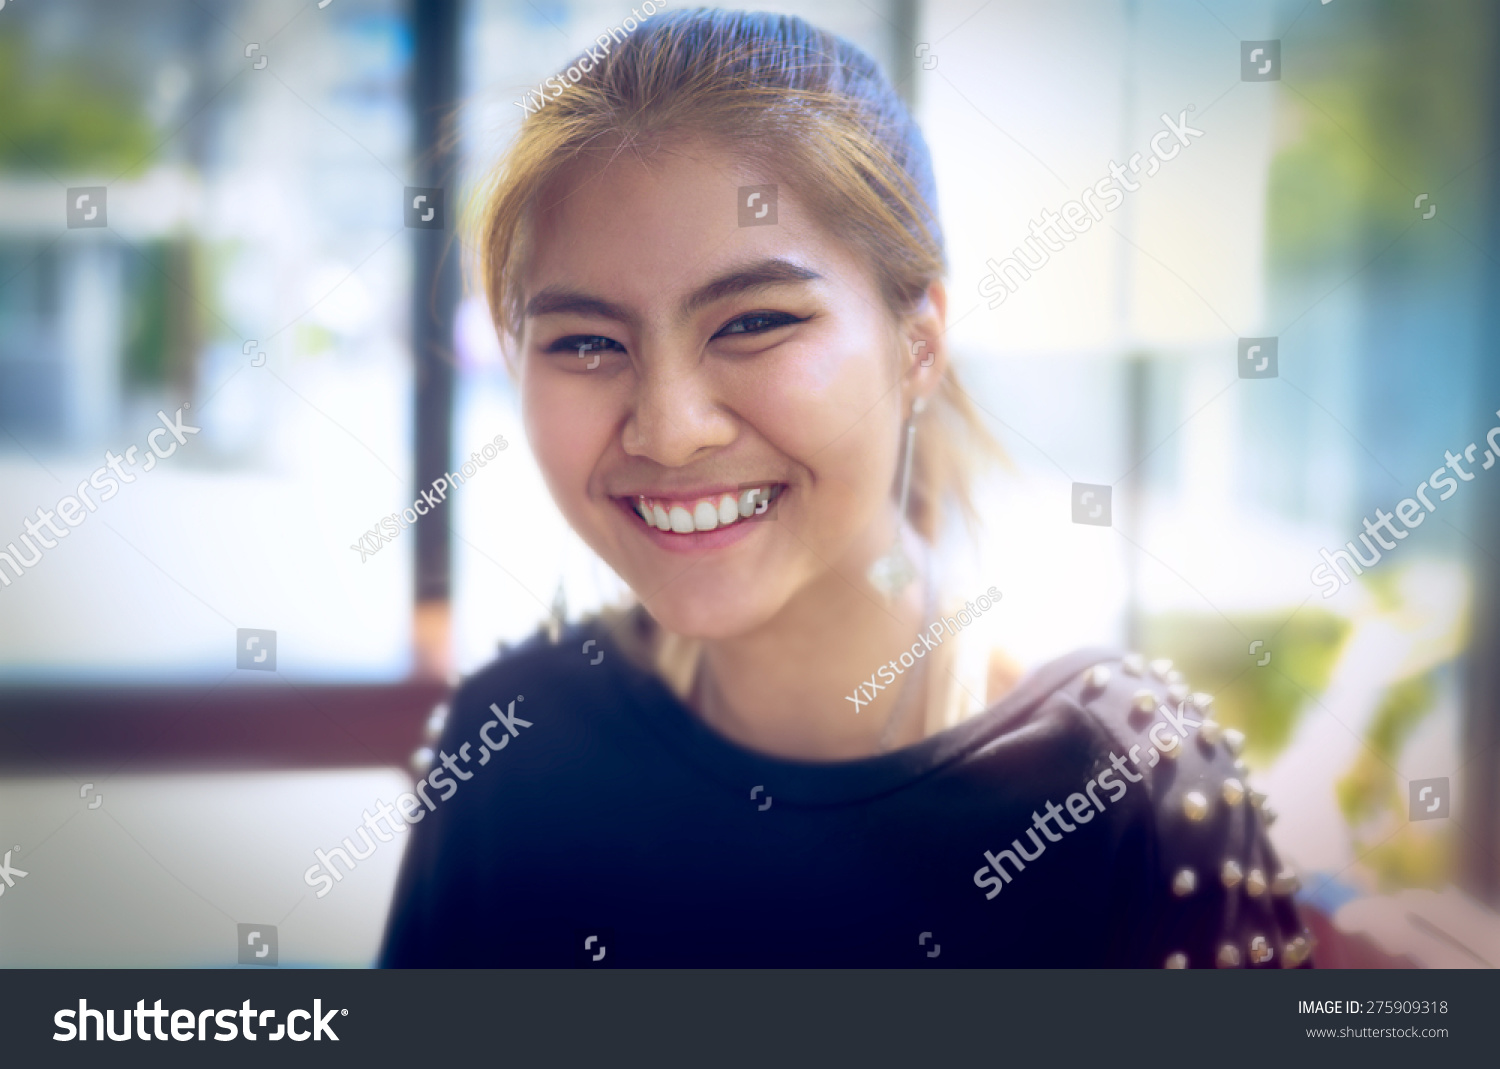 happy woman Asia Smiling white Teeth clean light background teenager  gold-brown hair ,make